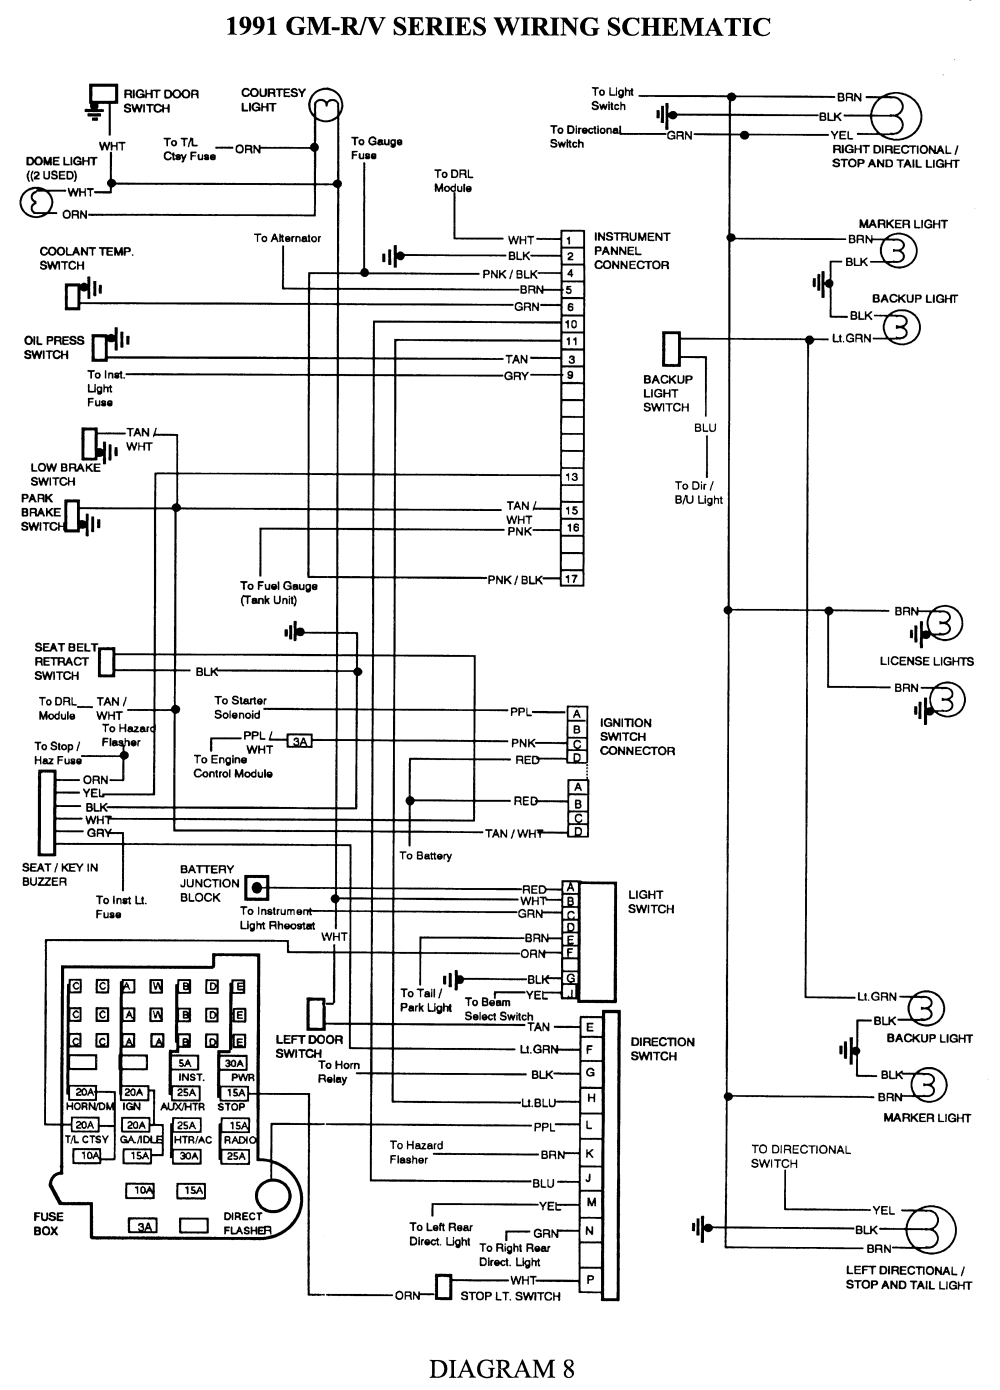 DIAGRAM] 99 Blazer Wiring Diagram FULL Version HD Quality Wiring Diagram -  CORONAPROPERTY.DATAJOB2013.FRcoronaproperty.datajob2013.fr